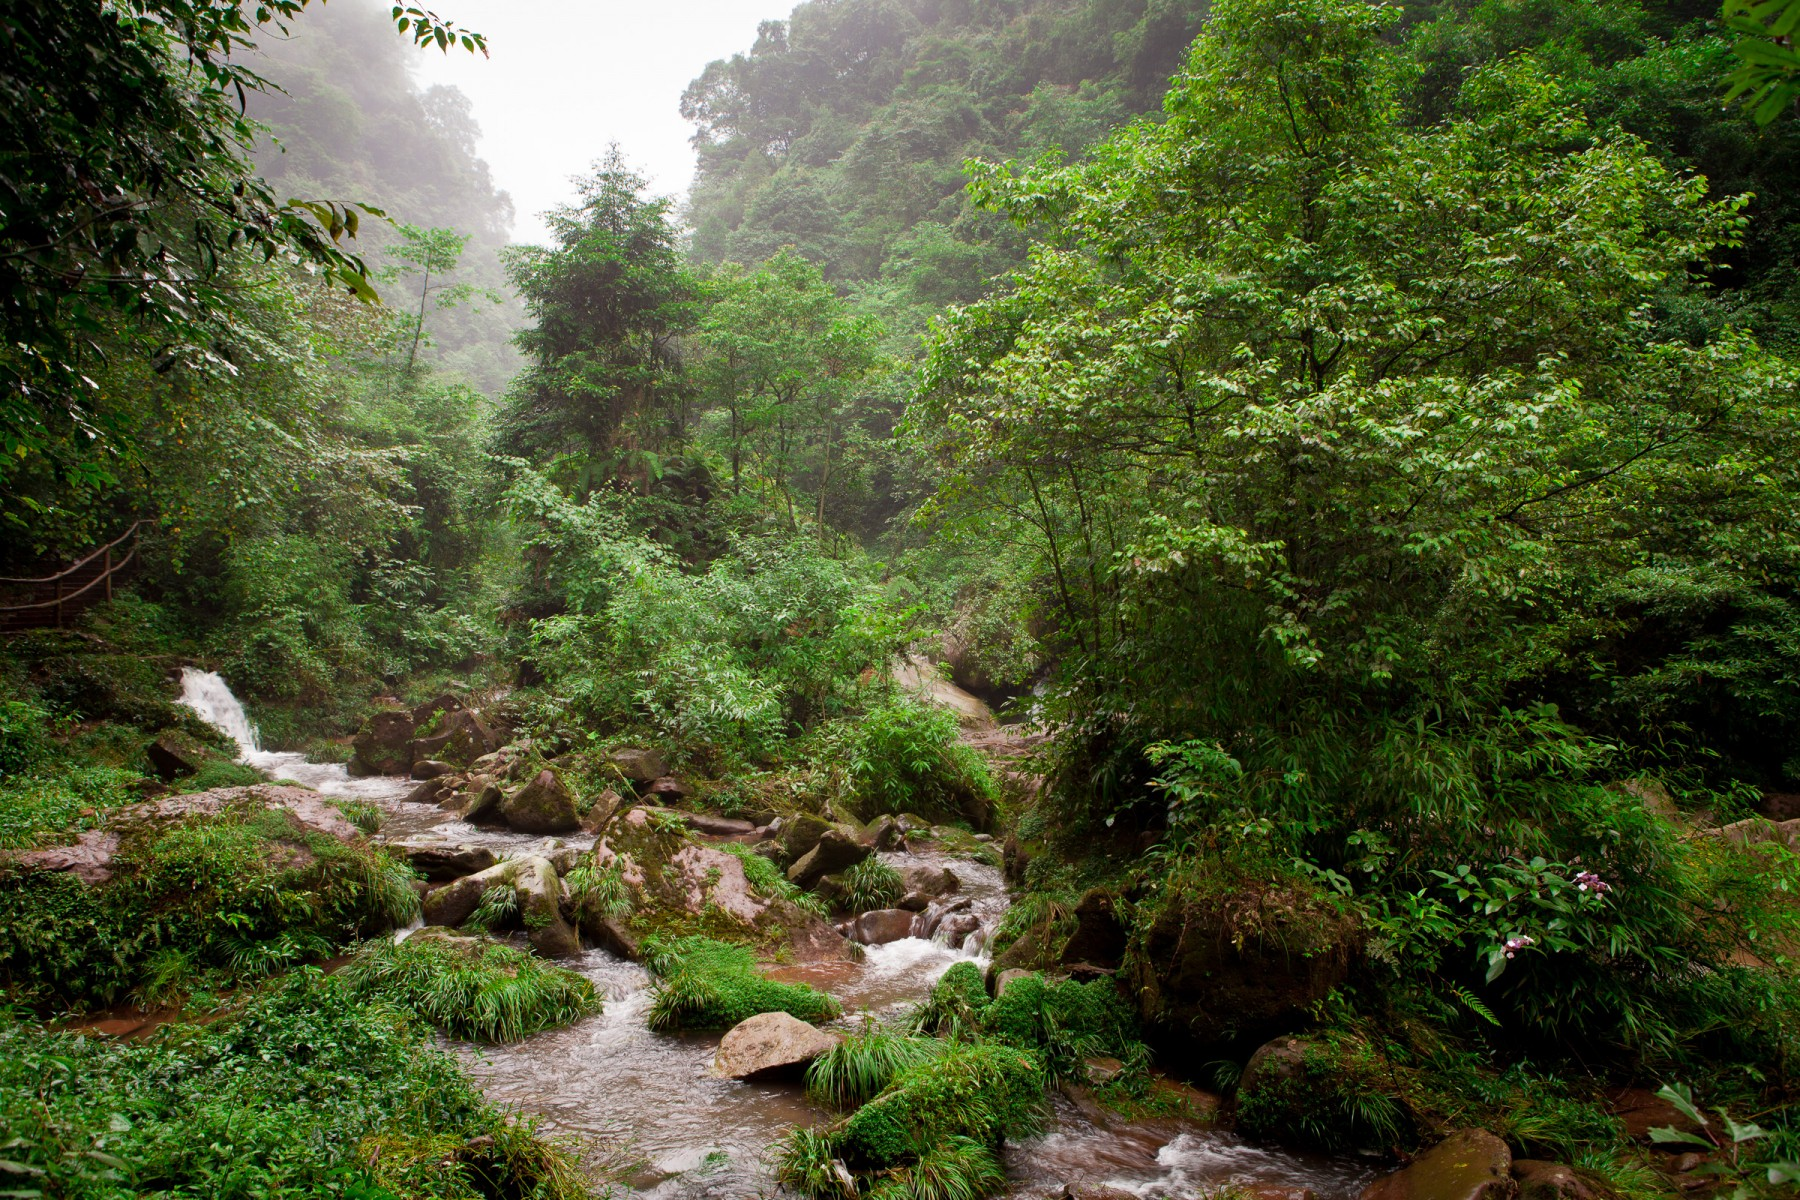 Jungle in Bifengxia gorge in Ya'an, Sichuan province, China.